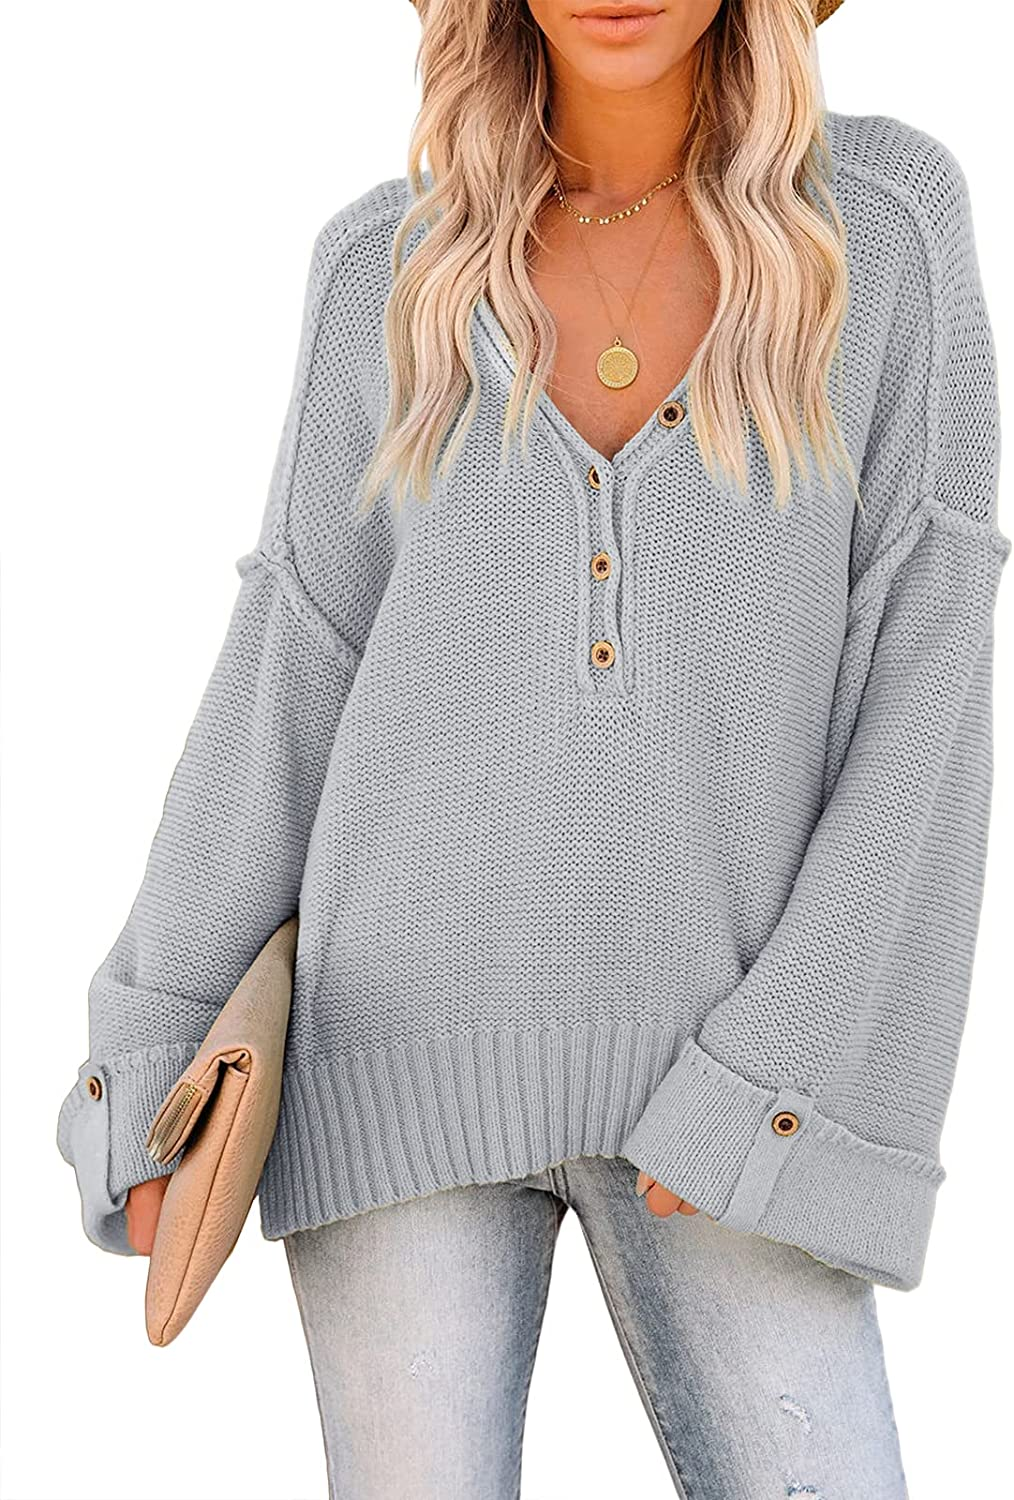 Ybenlow Womens Casual V Neck Pullover Sweaters Side Split Knit Loose Lightweight Bell Long Sleeve Jumper Tops